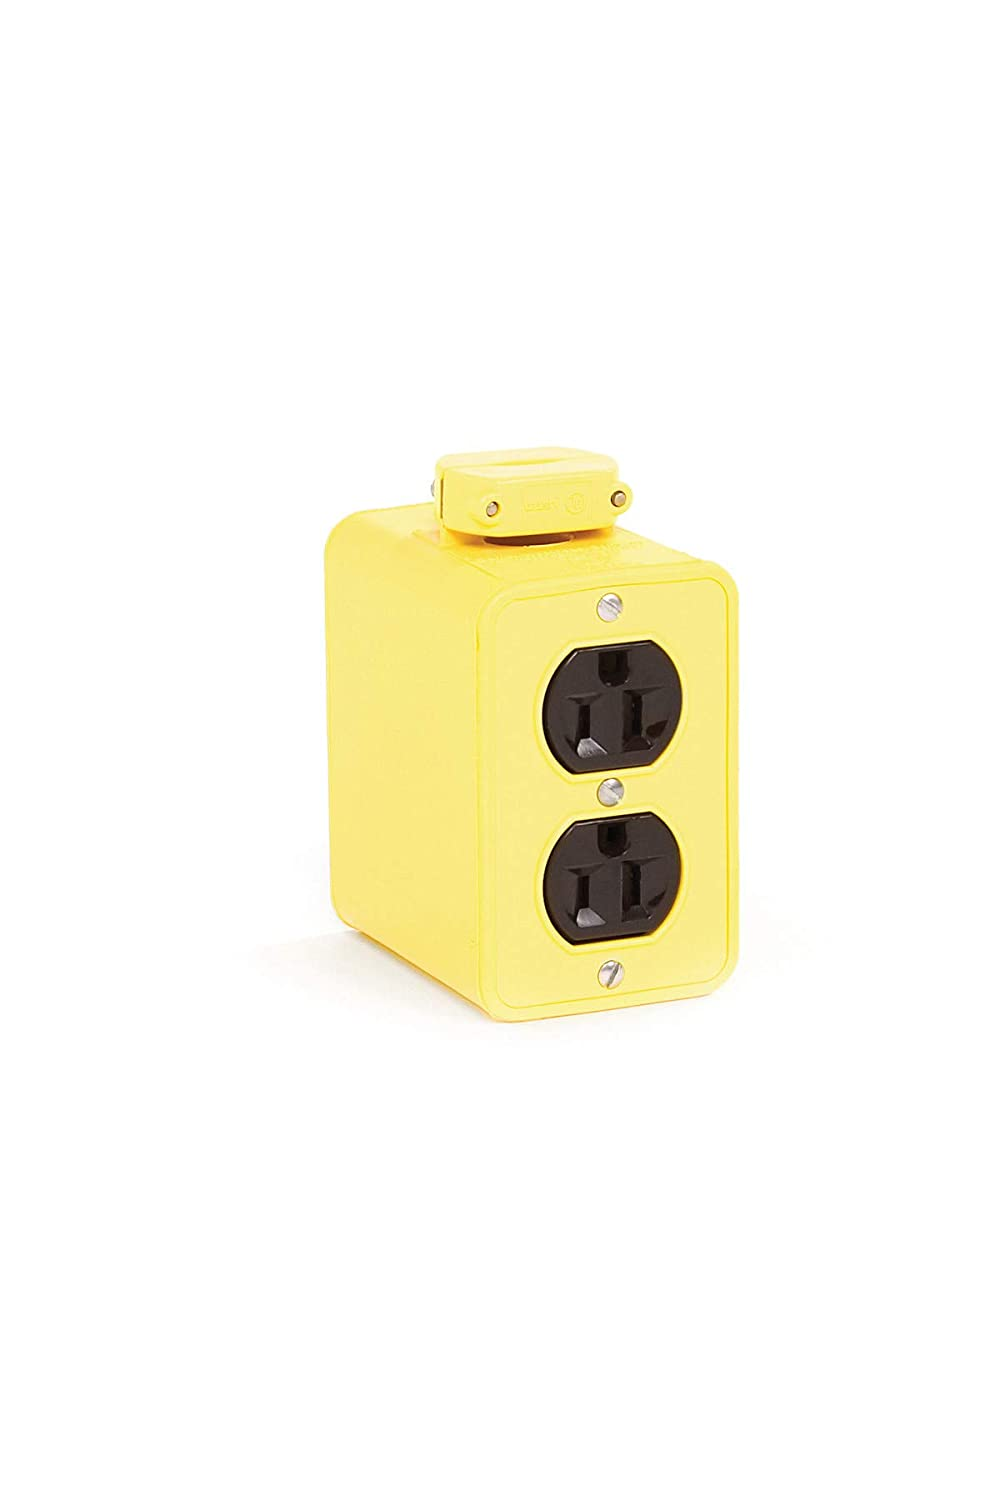 Woodhead Super-Safeway Extended Depth Outlet Box Model 3085